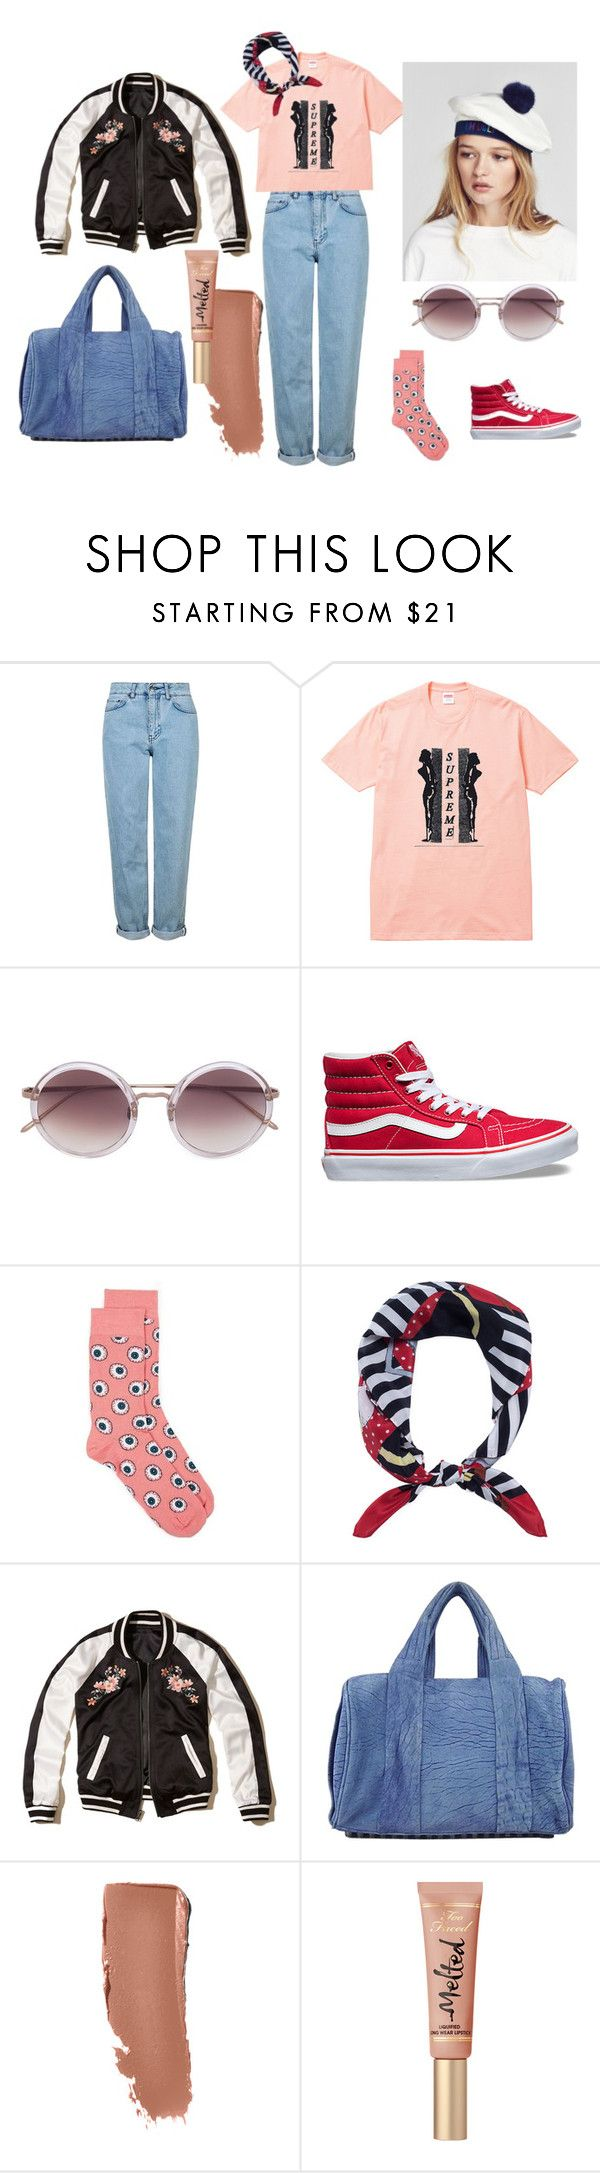 """#untitled2"" by yuna92 on Polyvore featuring Topshop, Linda Farrow, Vans, Love Moschino, Hollister Co. and Alexander Wang"